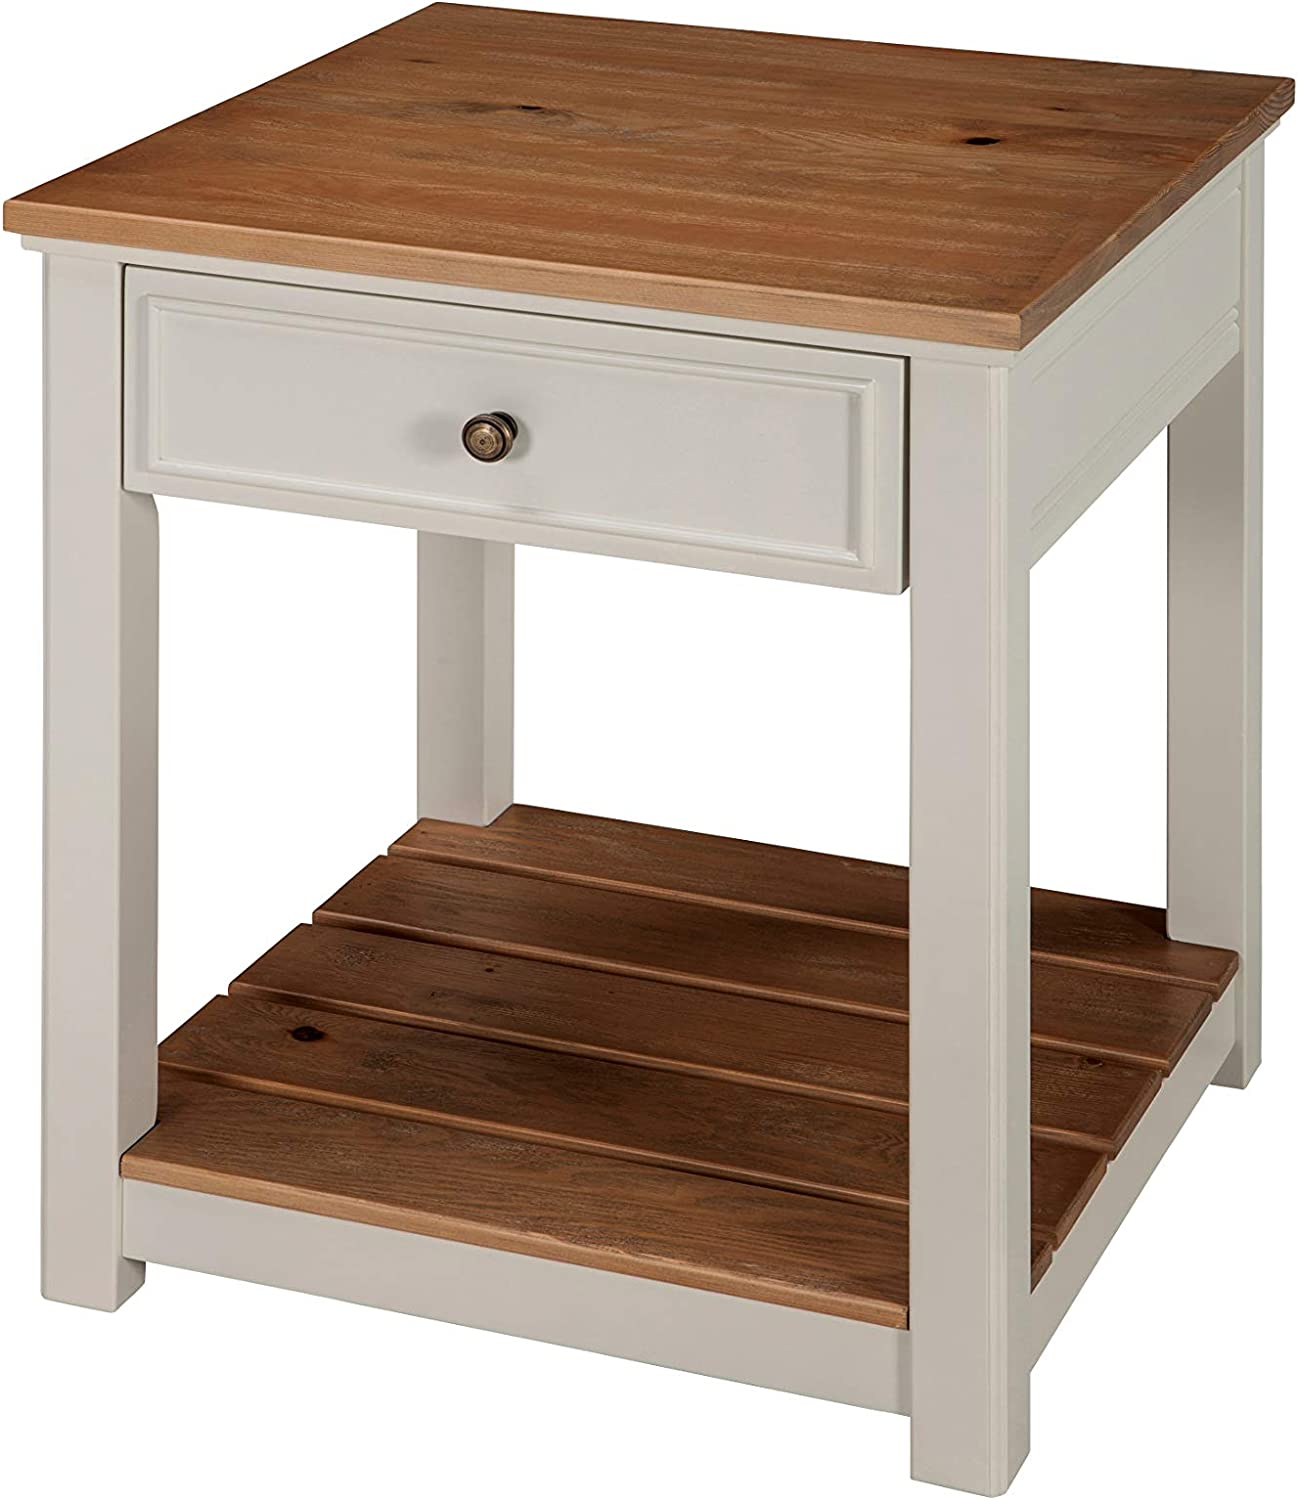 Savannah 1-Drawer End Table, Ivory with Natural Wood Top